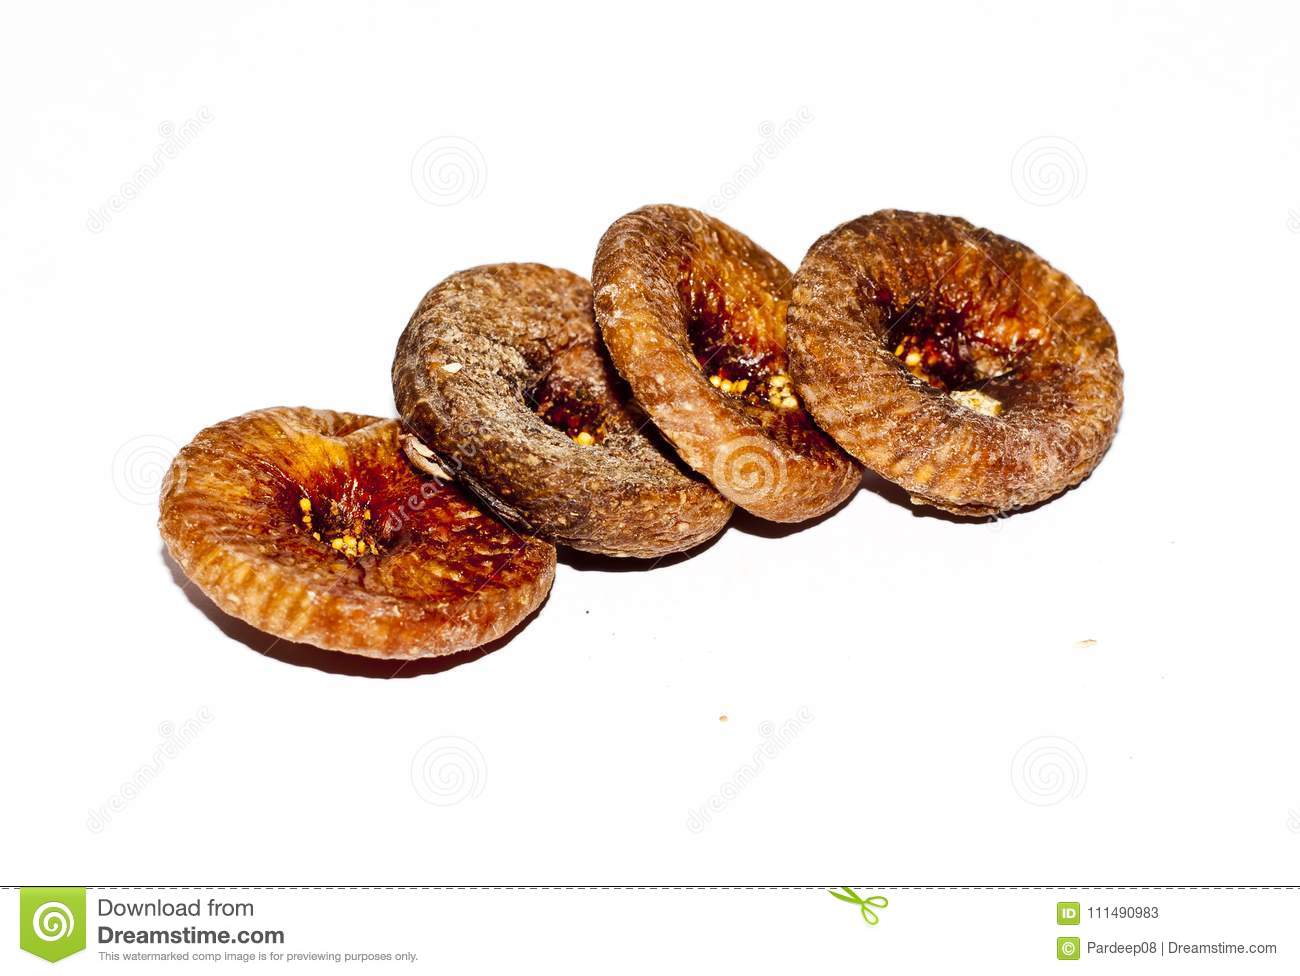 A row of dried figs